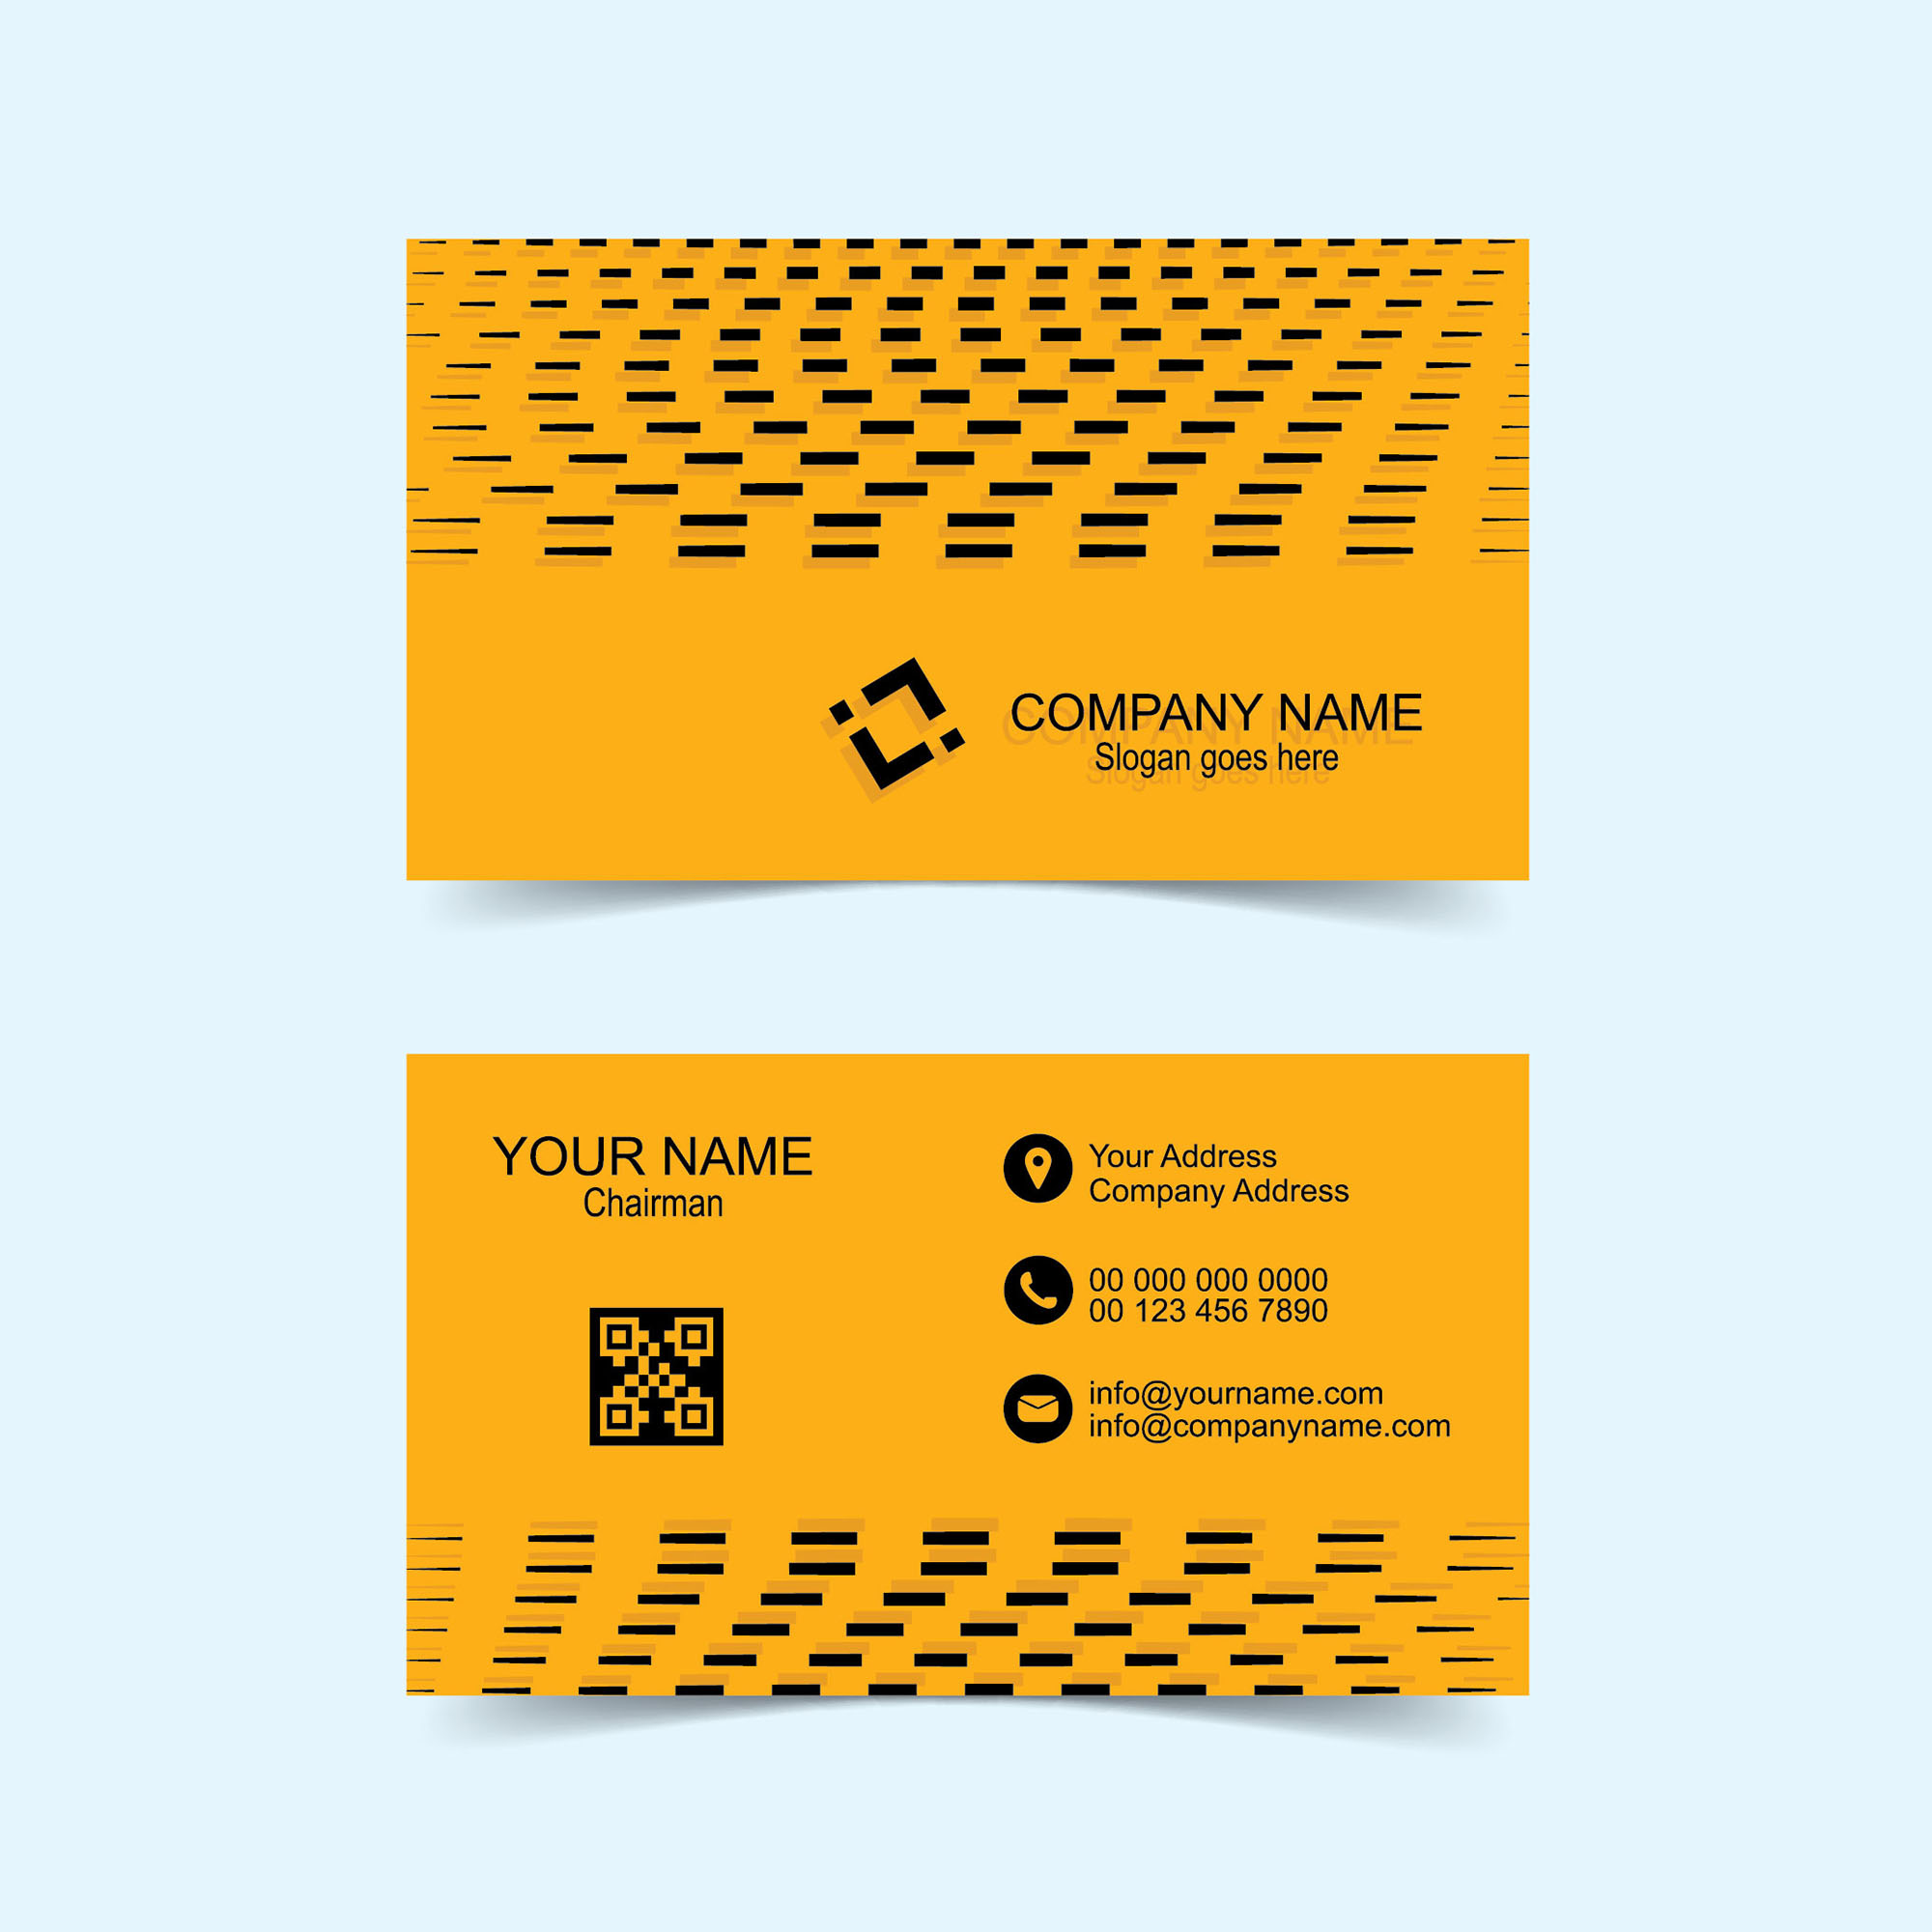 Free printable business card template download - Wisxi.com